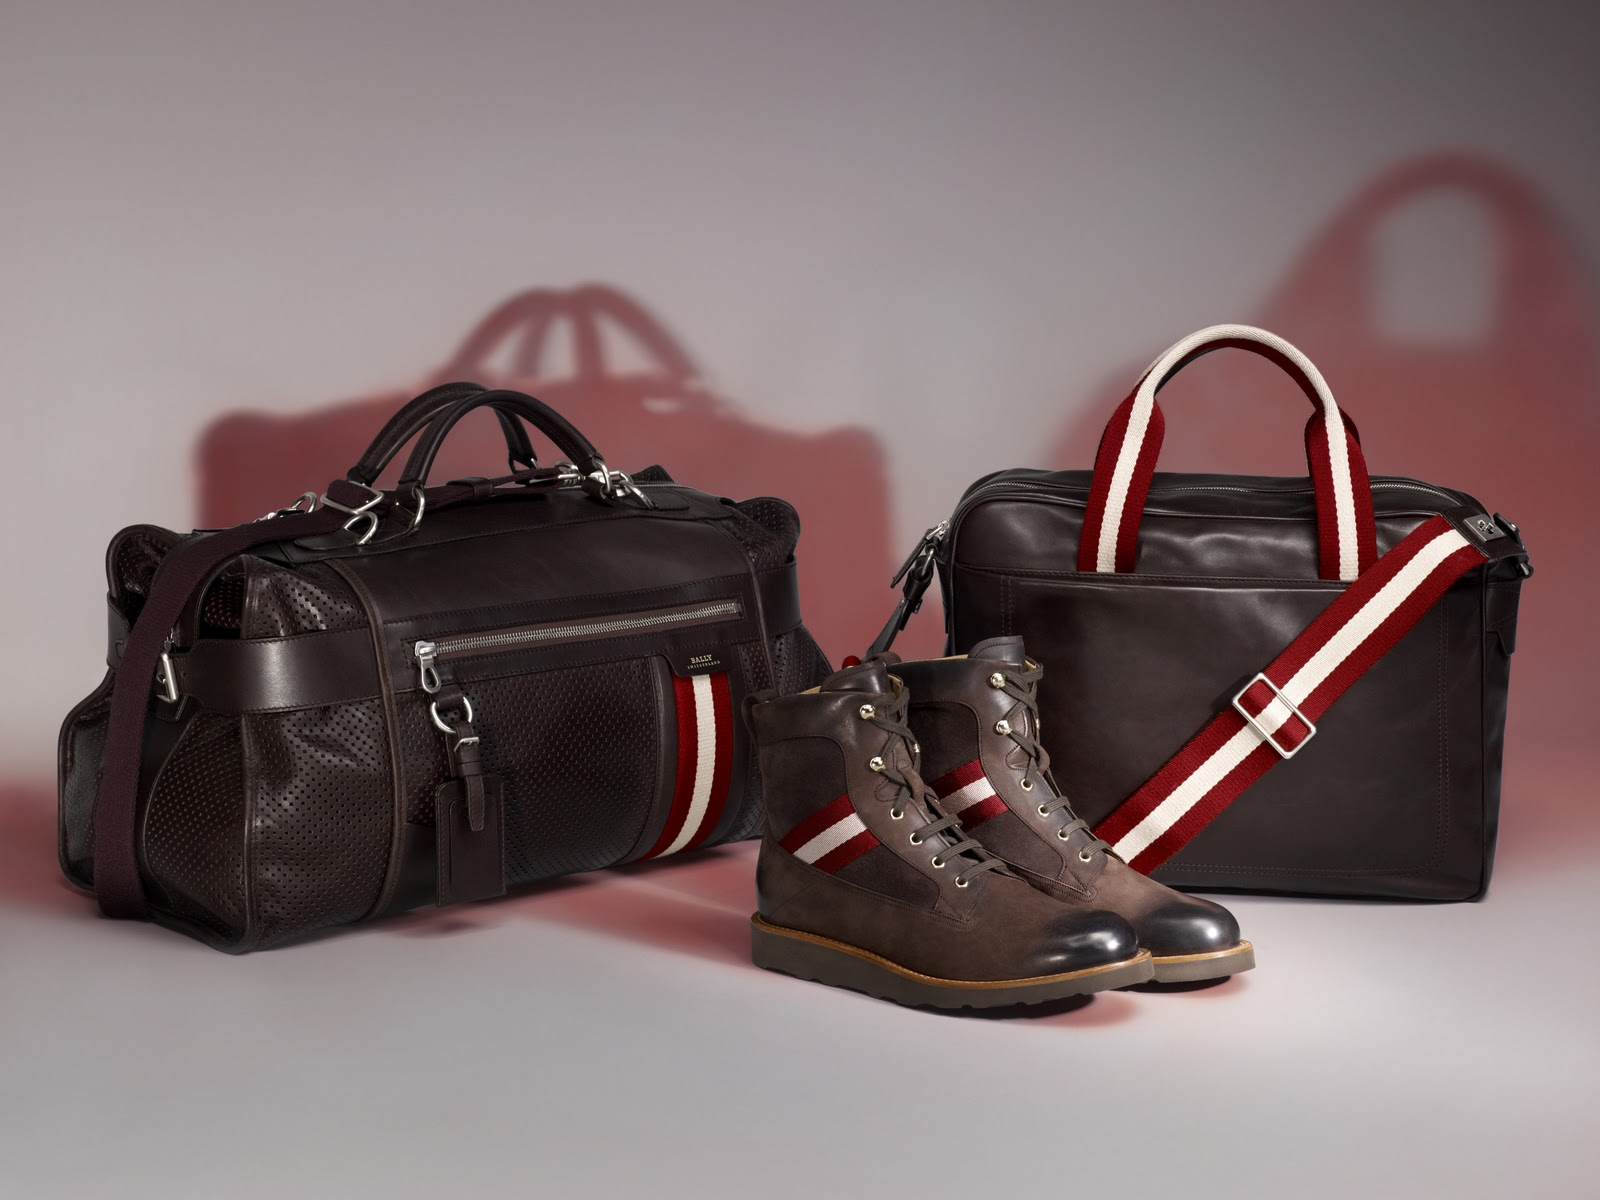 683acfe195586 Bally  Celebrating 160 years of a timeless brand. - Male Mode